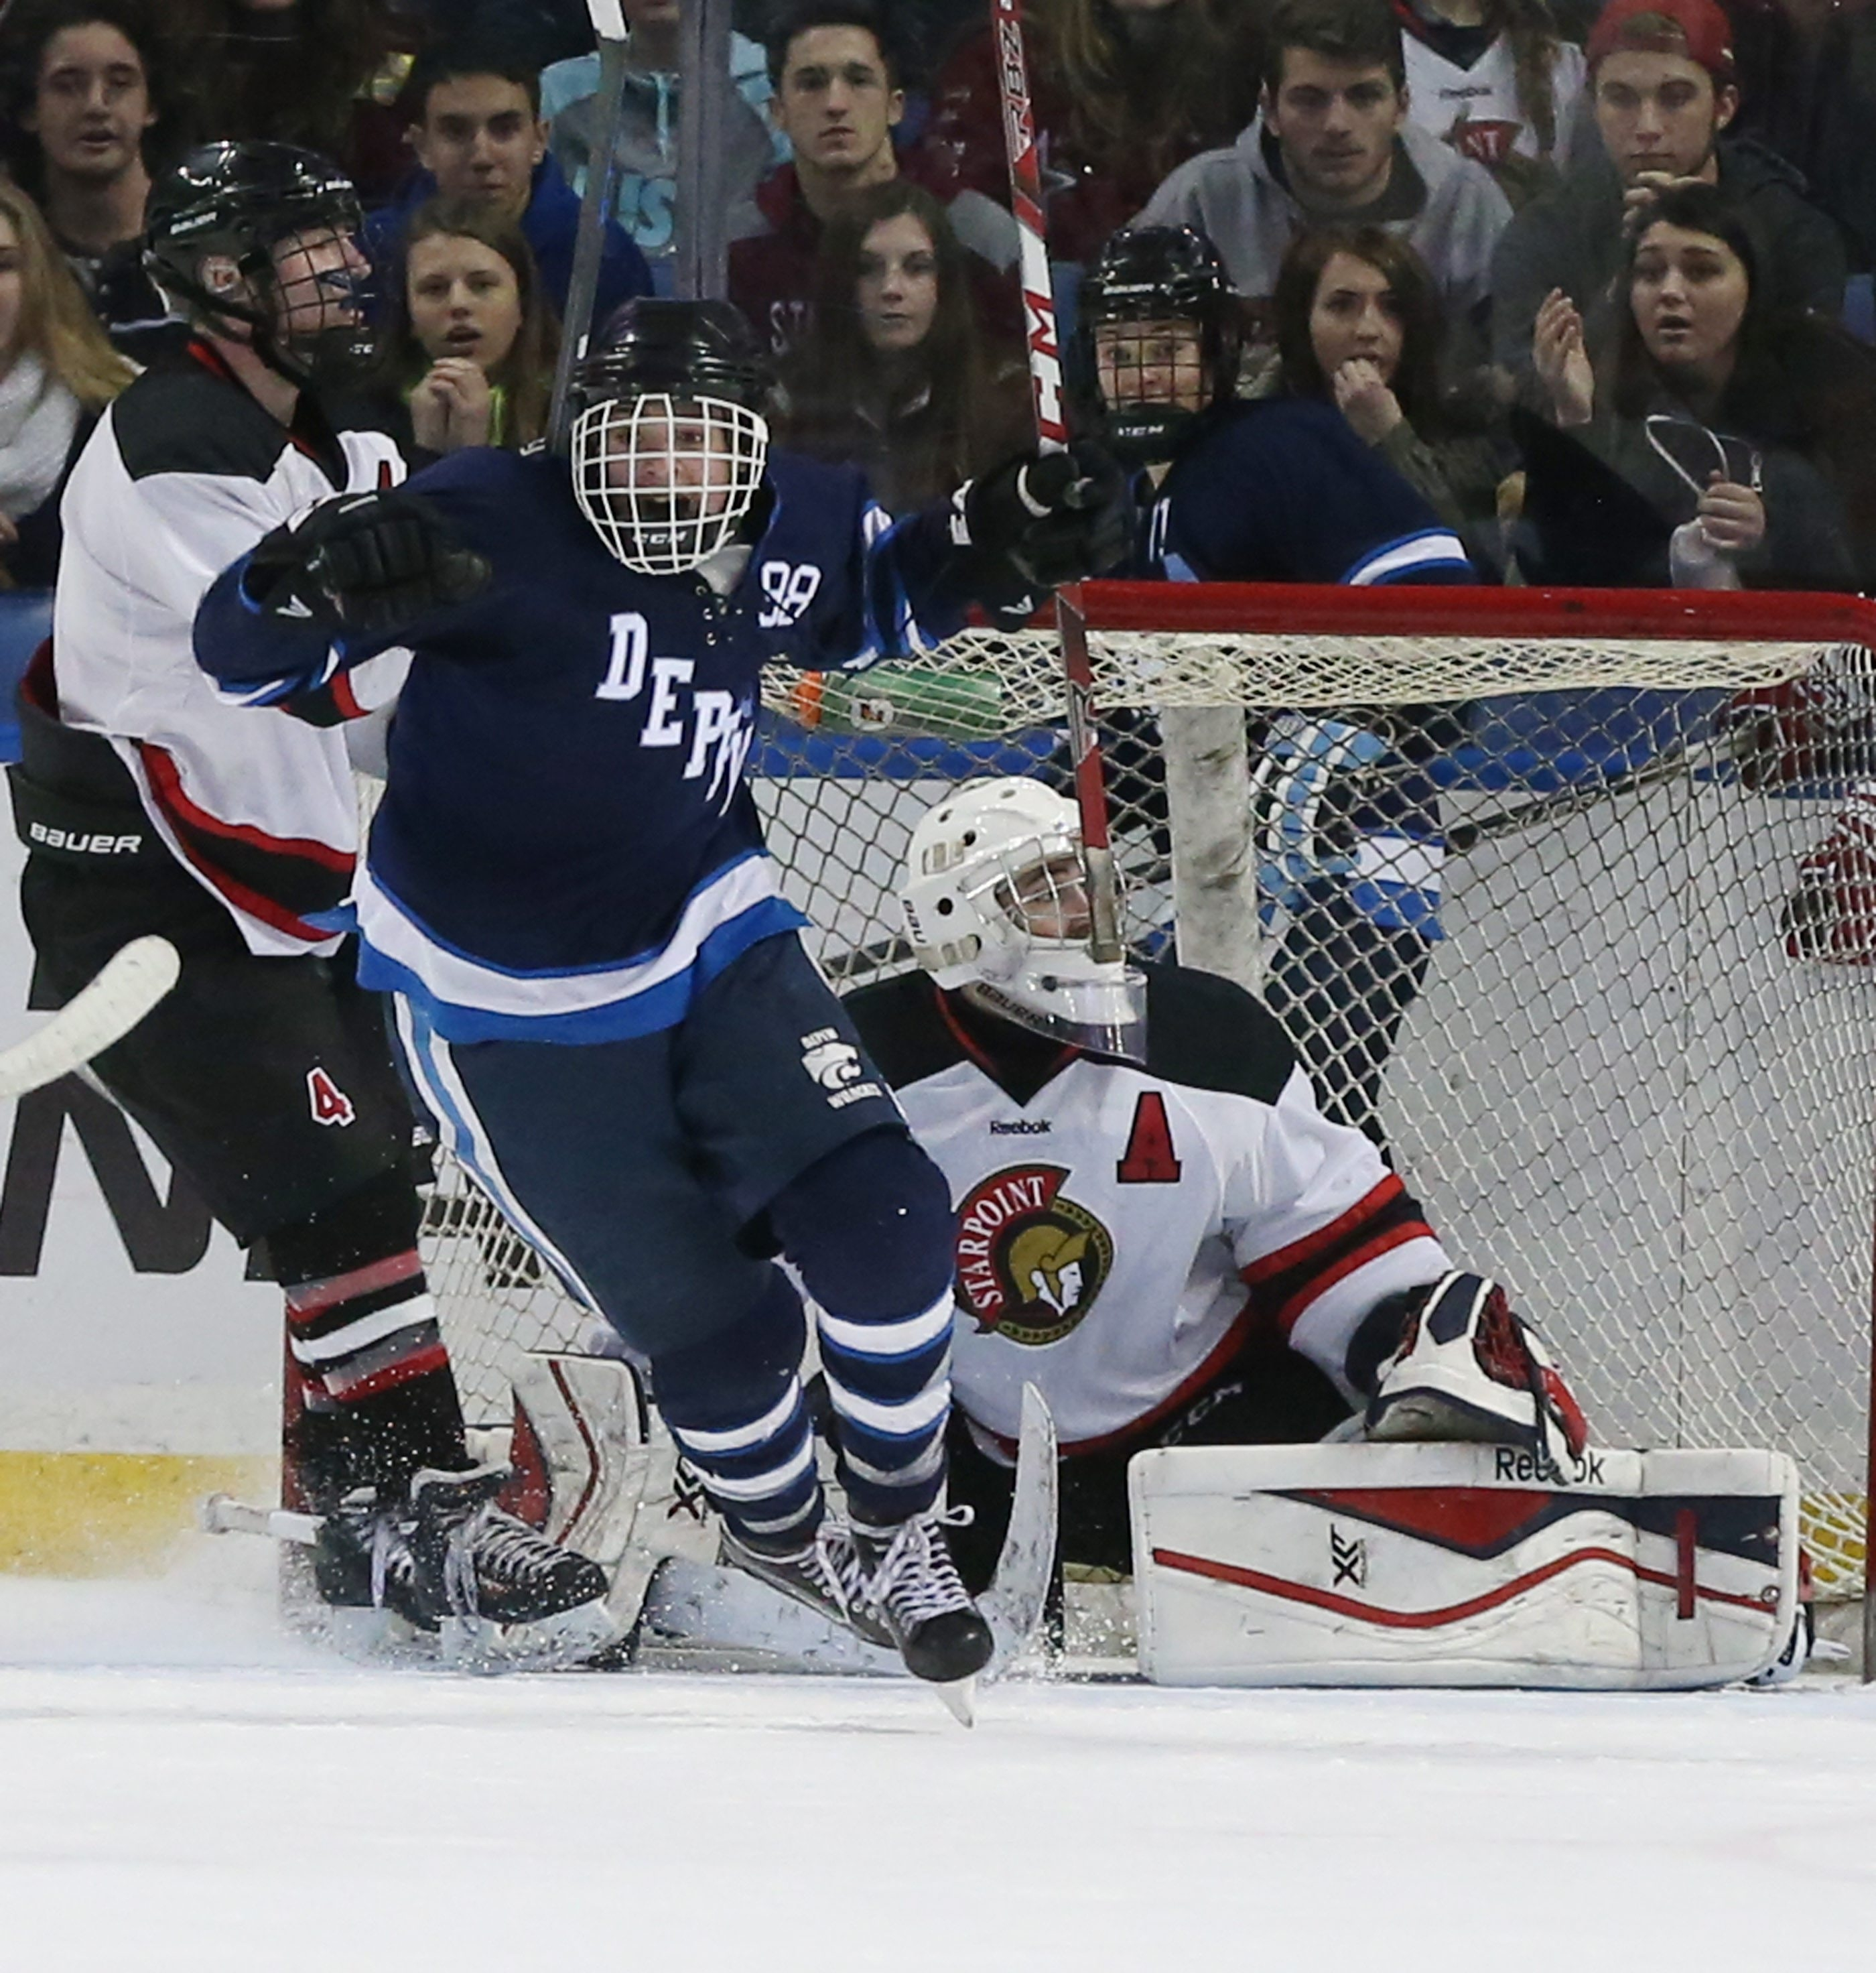 Depew's Nick Grupp scores the game winning goal in triple over time to beat Starpoint 3-2 for the Small school club hockey championship at First Niagara Center in Buffalo,NY on Sunday, Feb. 28, 2016.  (James P. McCoy/ Buffalo News)